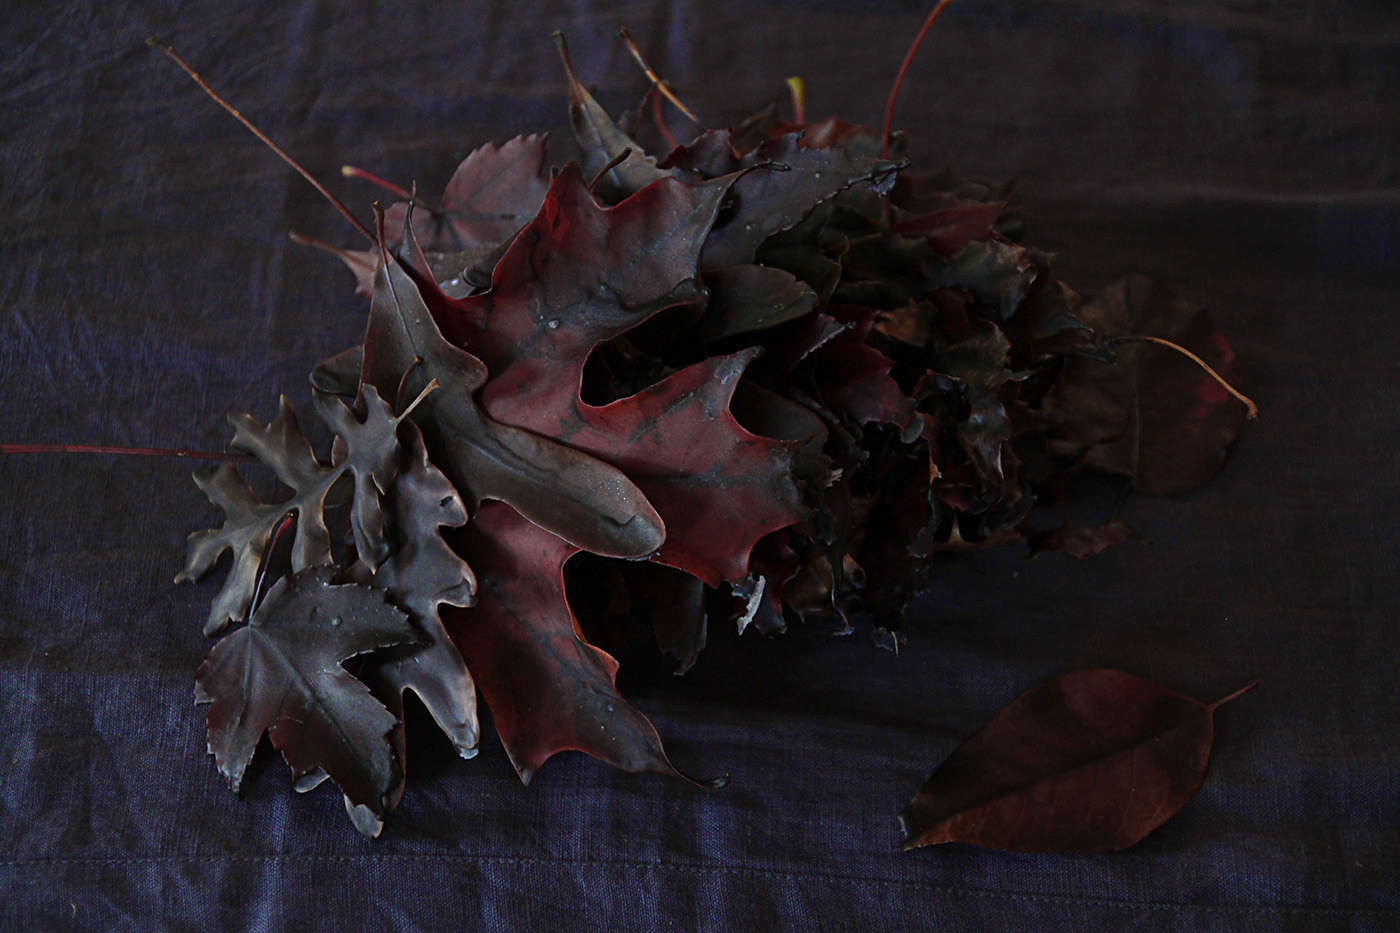 Halloween%20table%20with%20Black%20Leaves%2C%20waxed%20leaves%2C%20by%20Justine%20Hand%20for%20Remodelista.jpg